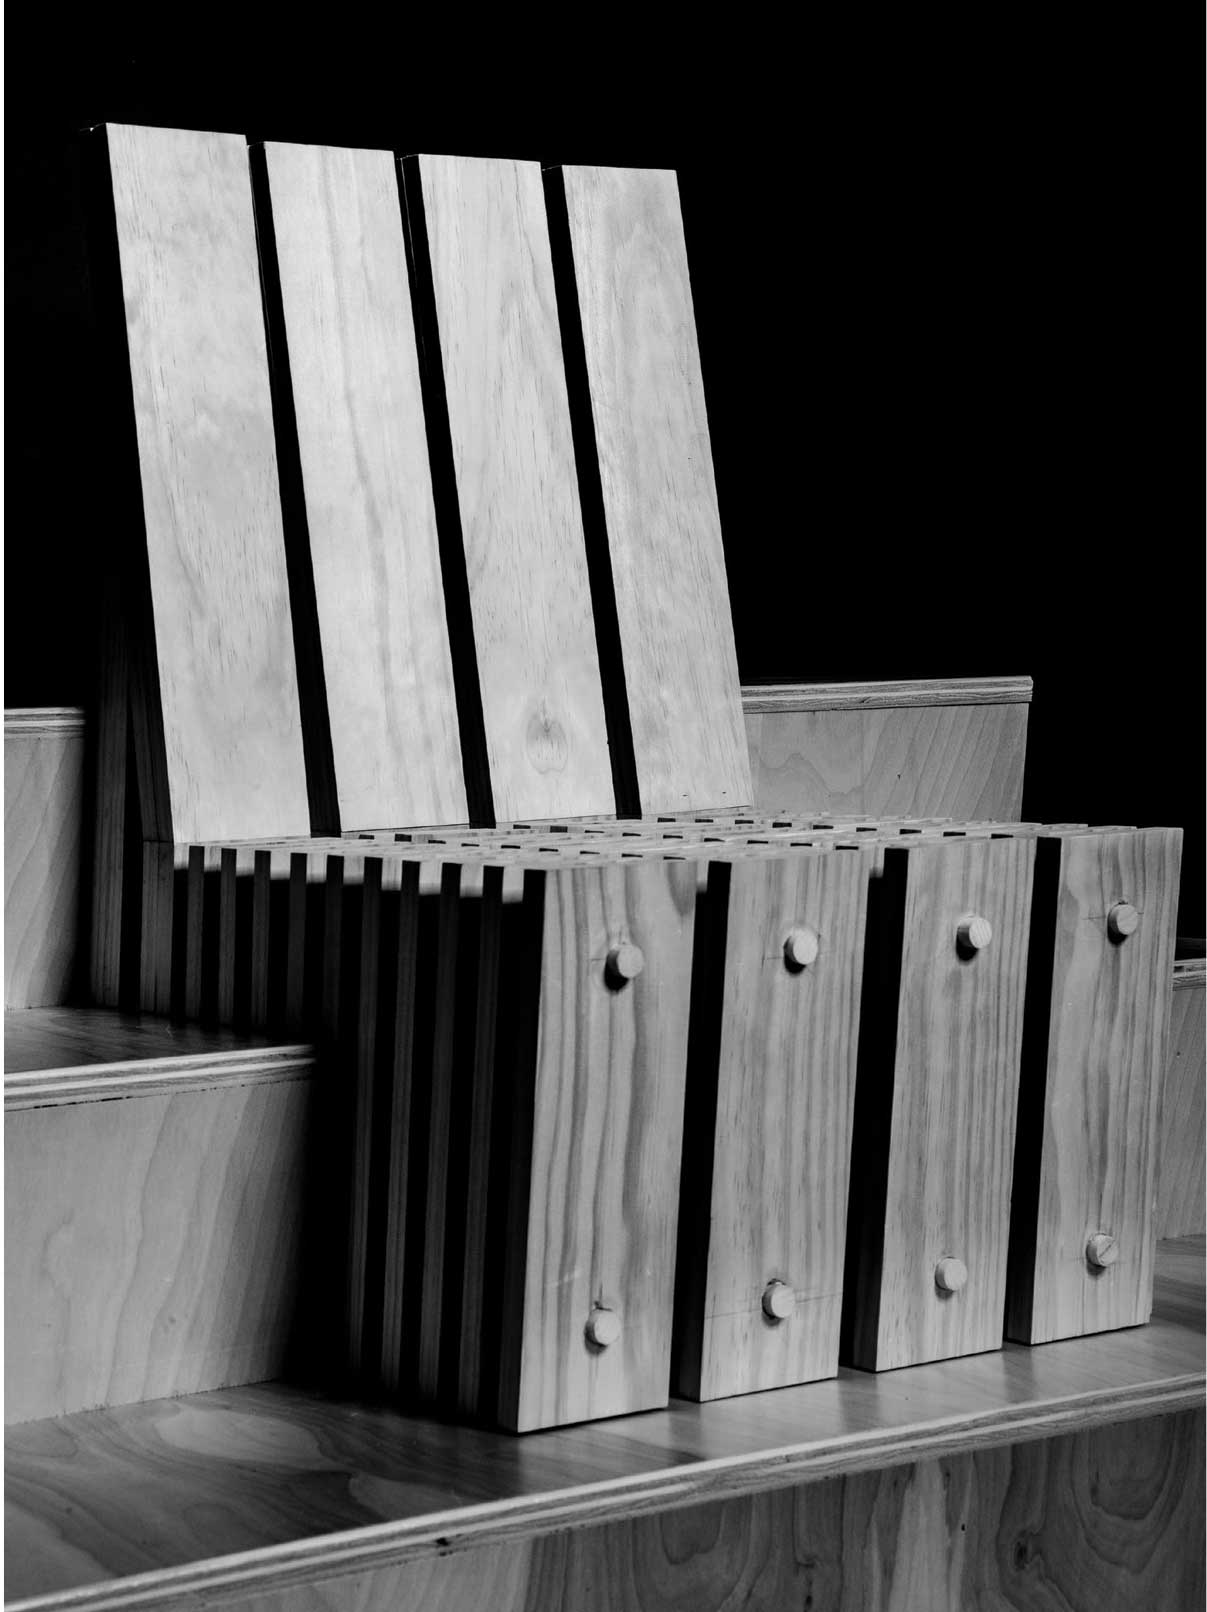 Olivia Baker and Krishna Desai: A Chair for Listening. Shows black and white image of wooden chair design.